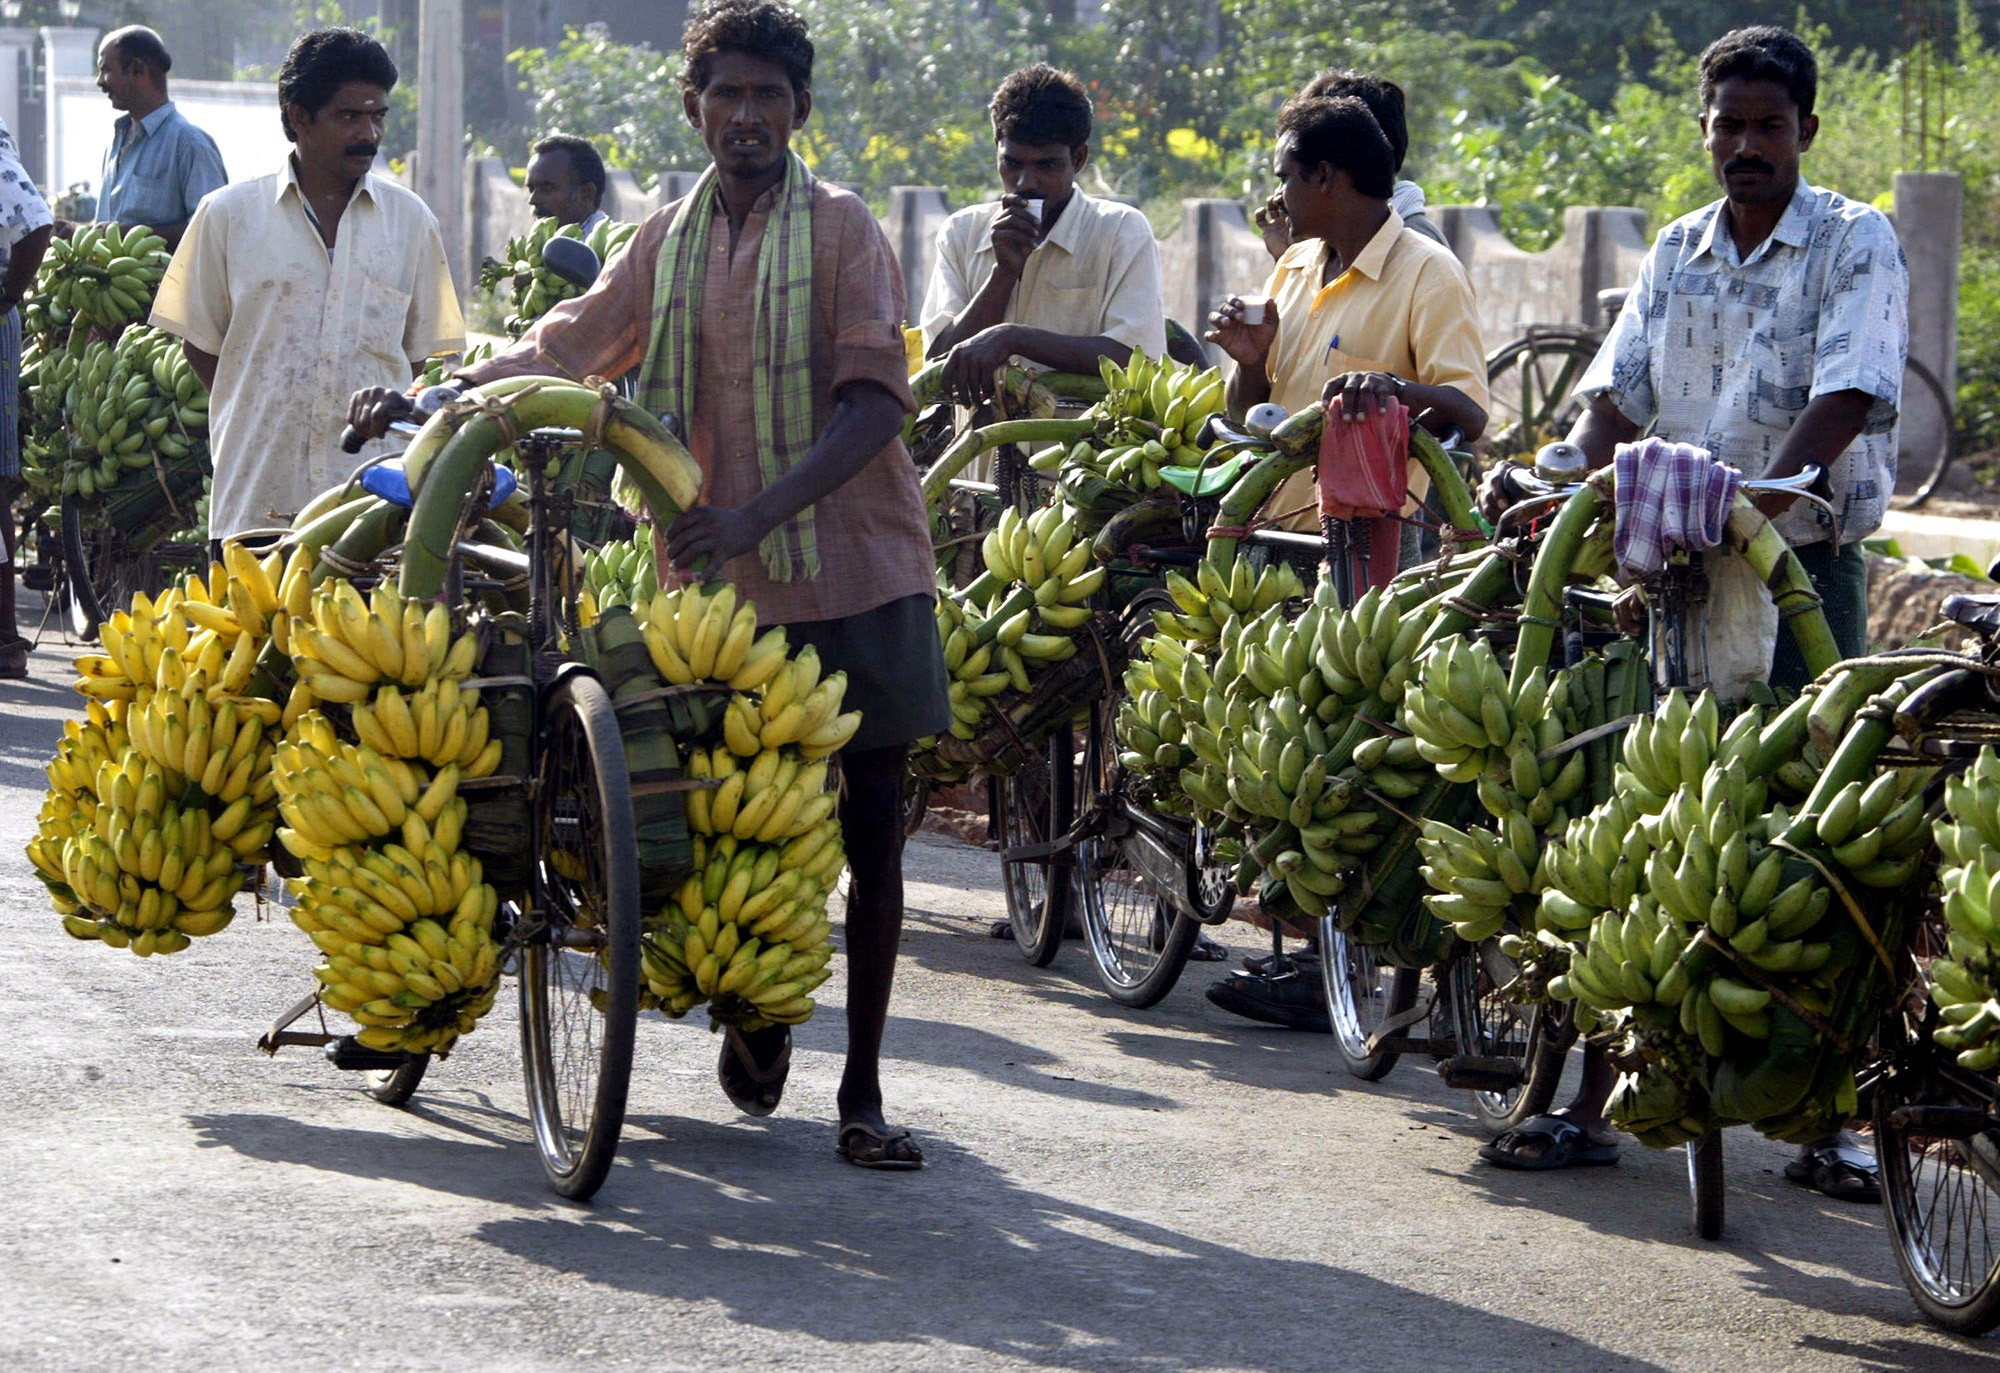 India is the world's top producer of banana, mango and grapes. The country is second in the global production of fruits and vegetables. (Credit: Noah Seelam / AFP)